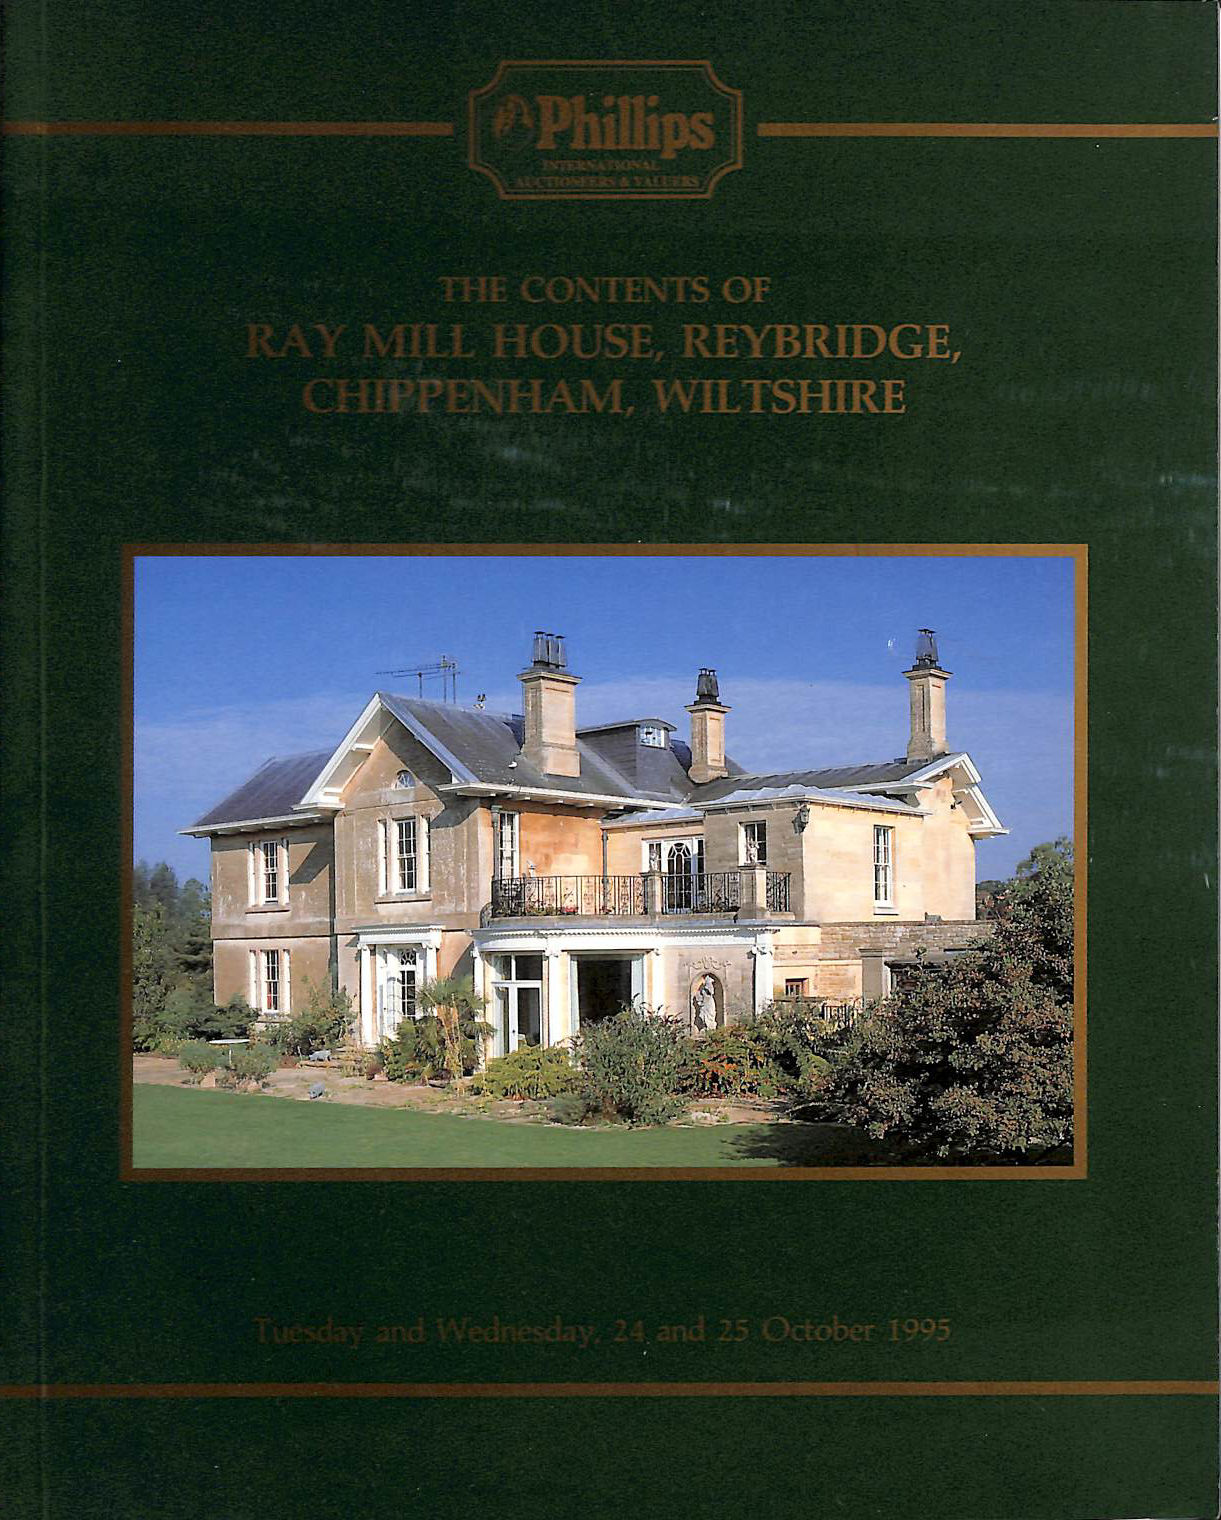 Image for The Contents of Ray Mill House, Reybridge, Chippenham, Wiltshire. Phillips auction catalogue, 24 and 25 October, 1995